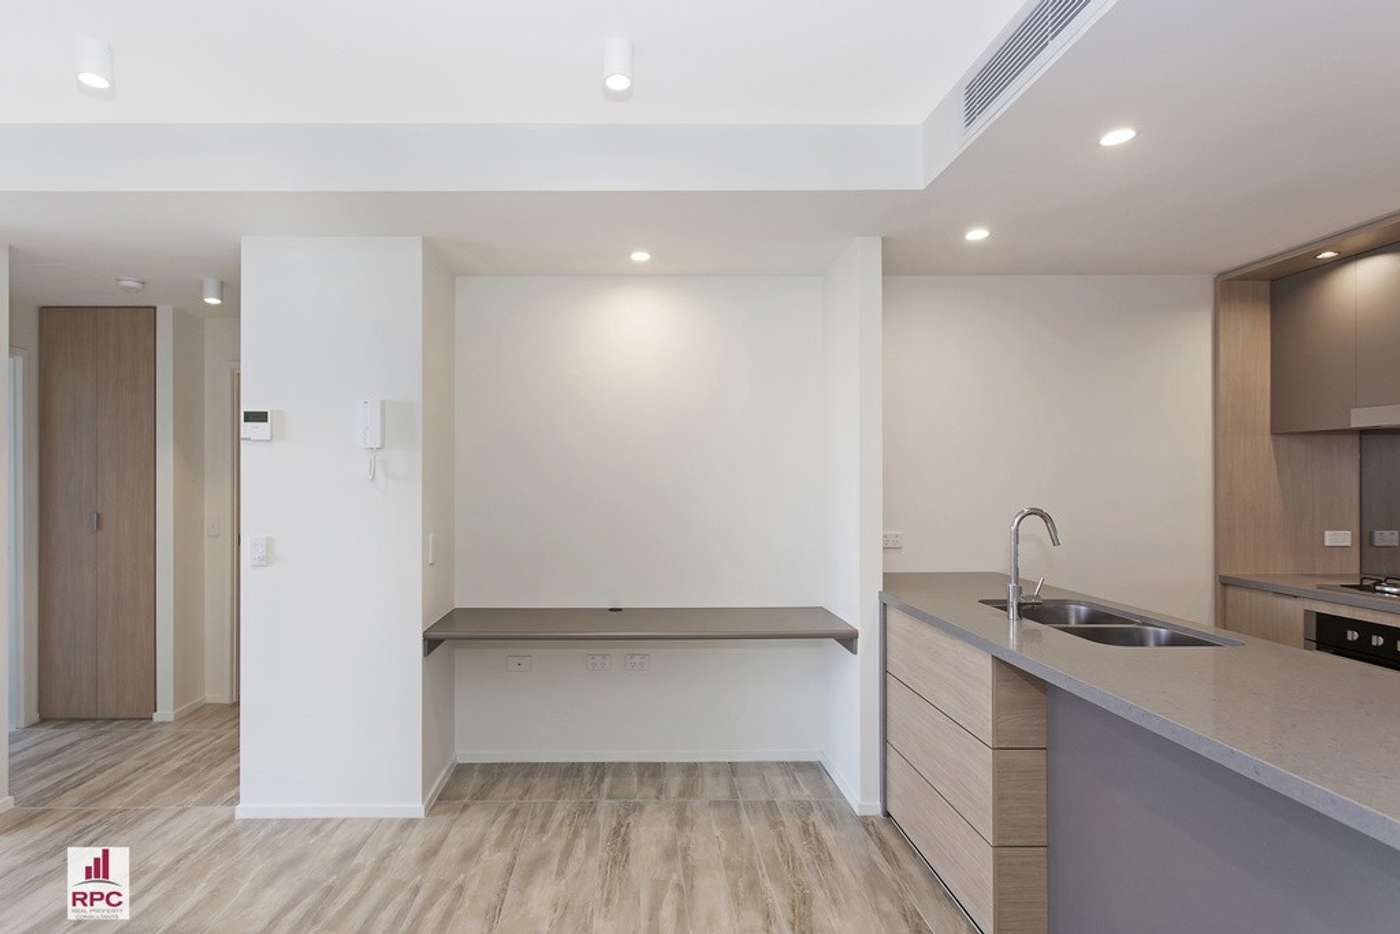 Fifth view of Homely apartment listing, 702/36 Anglesey Street, Kangaroo Point QLD 4169